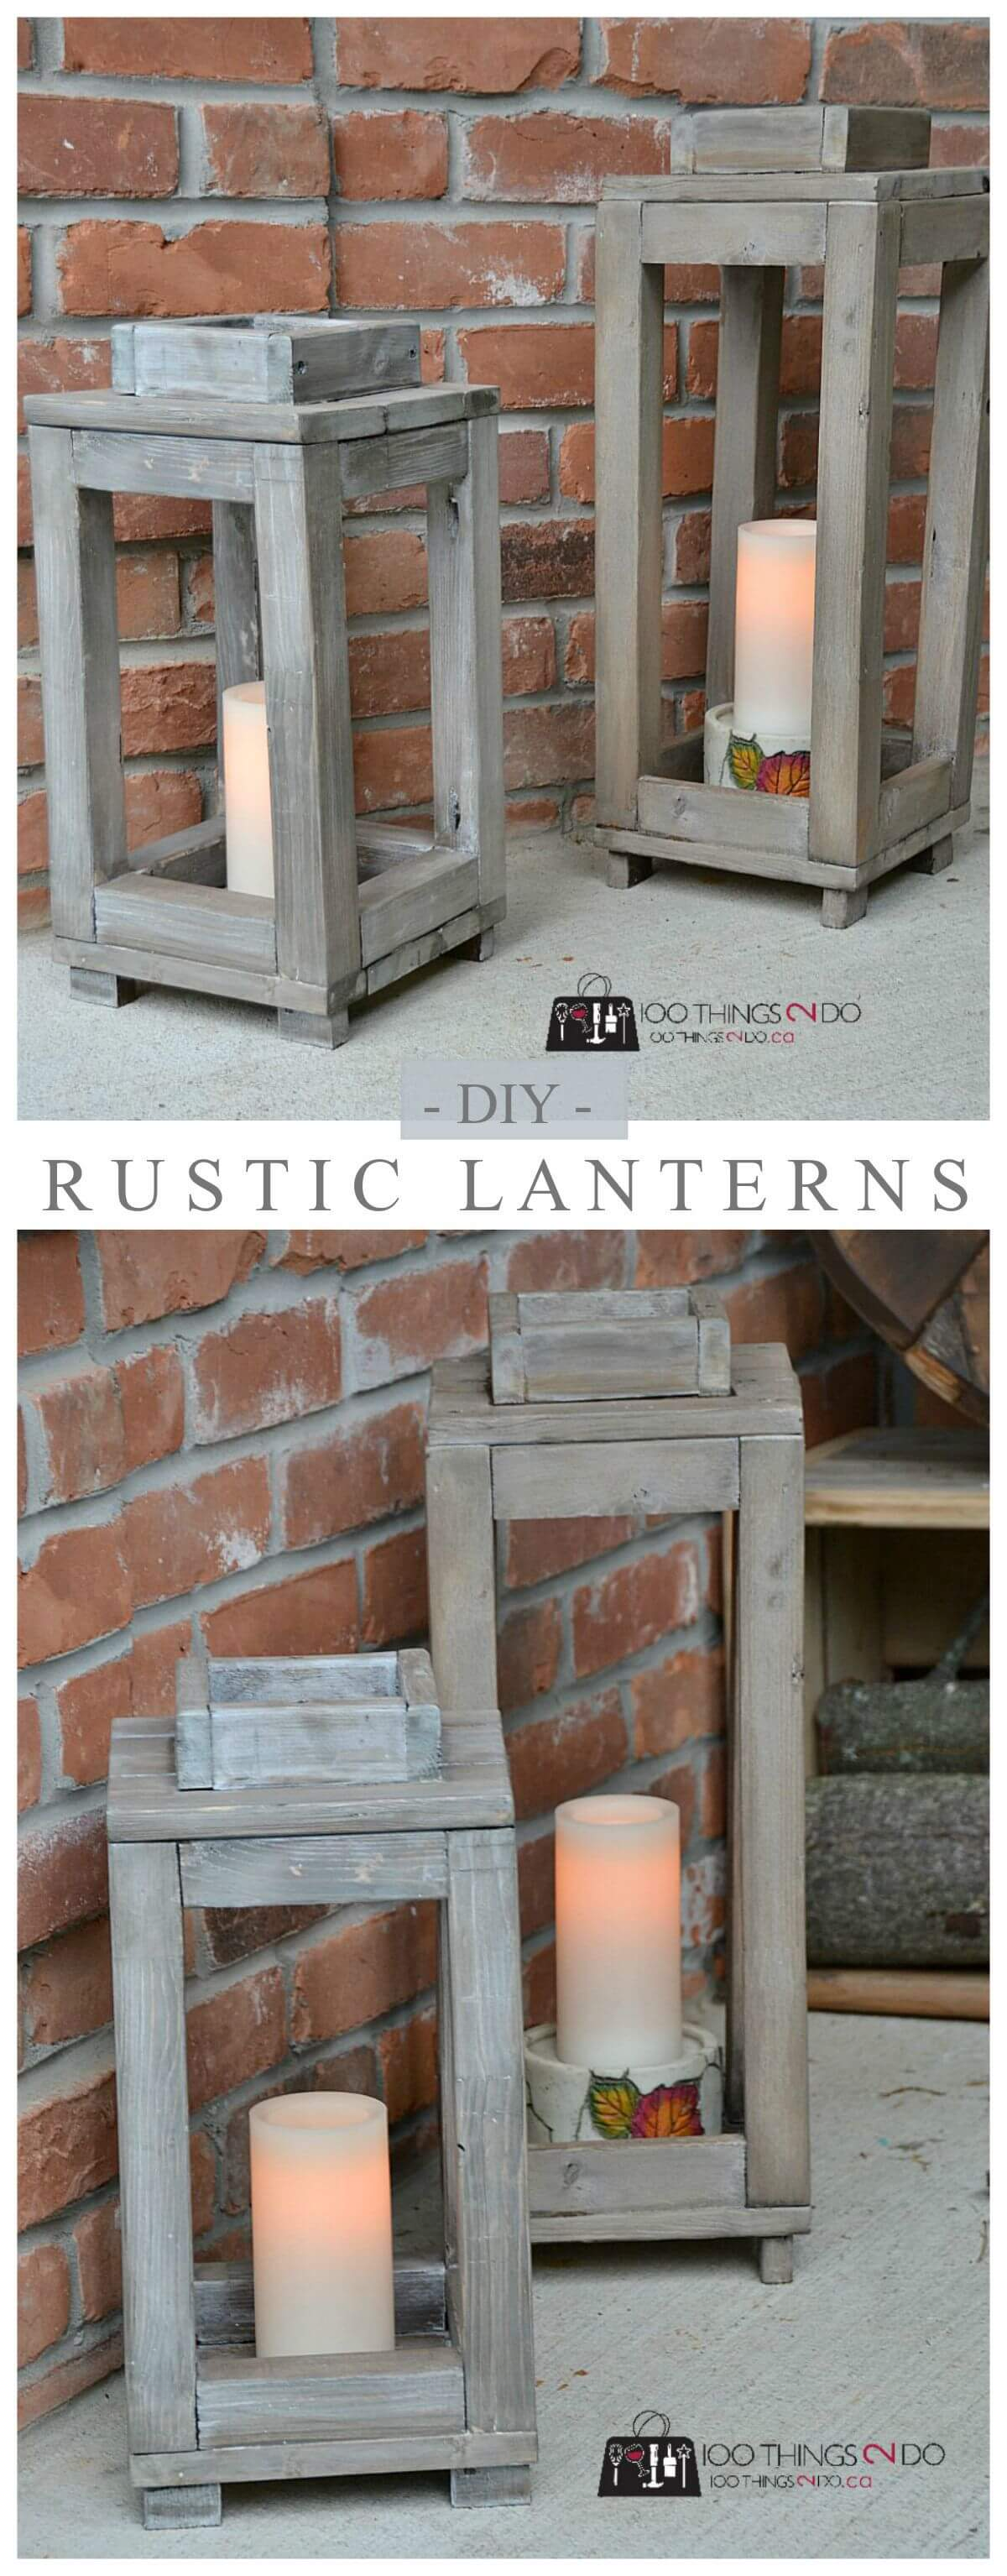 Wood Lanterns for Inside and Out